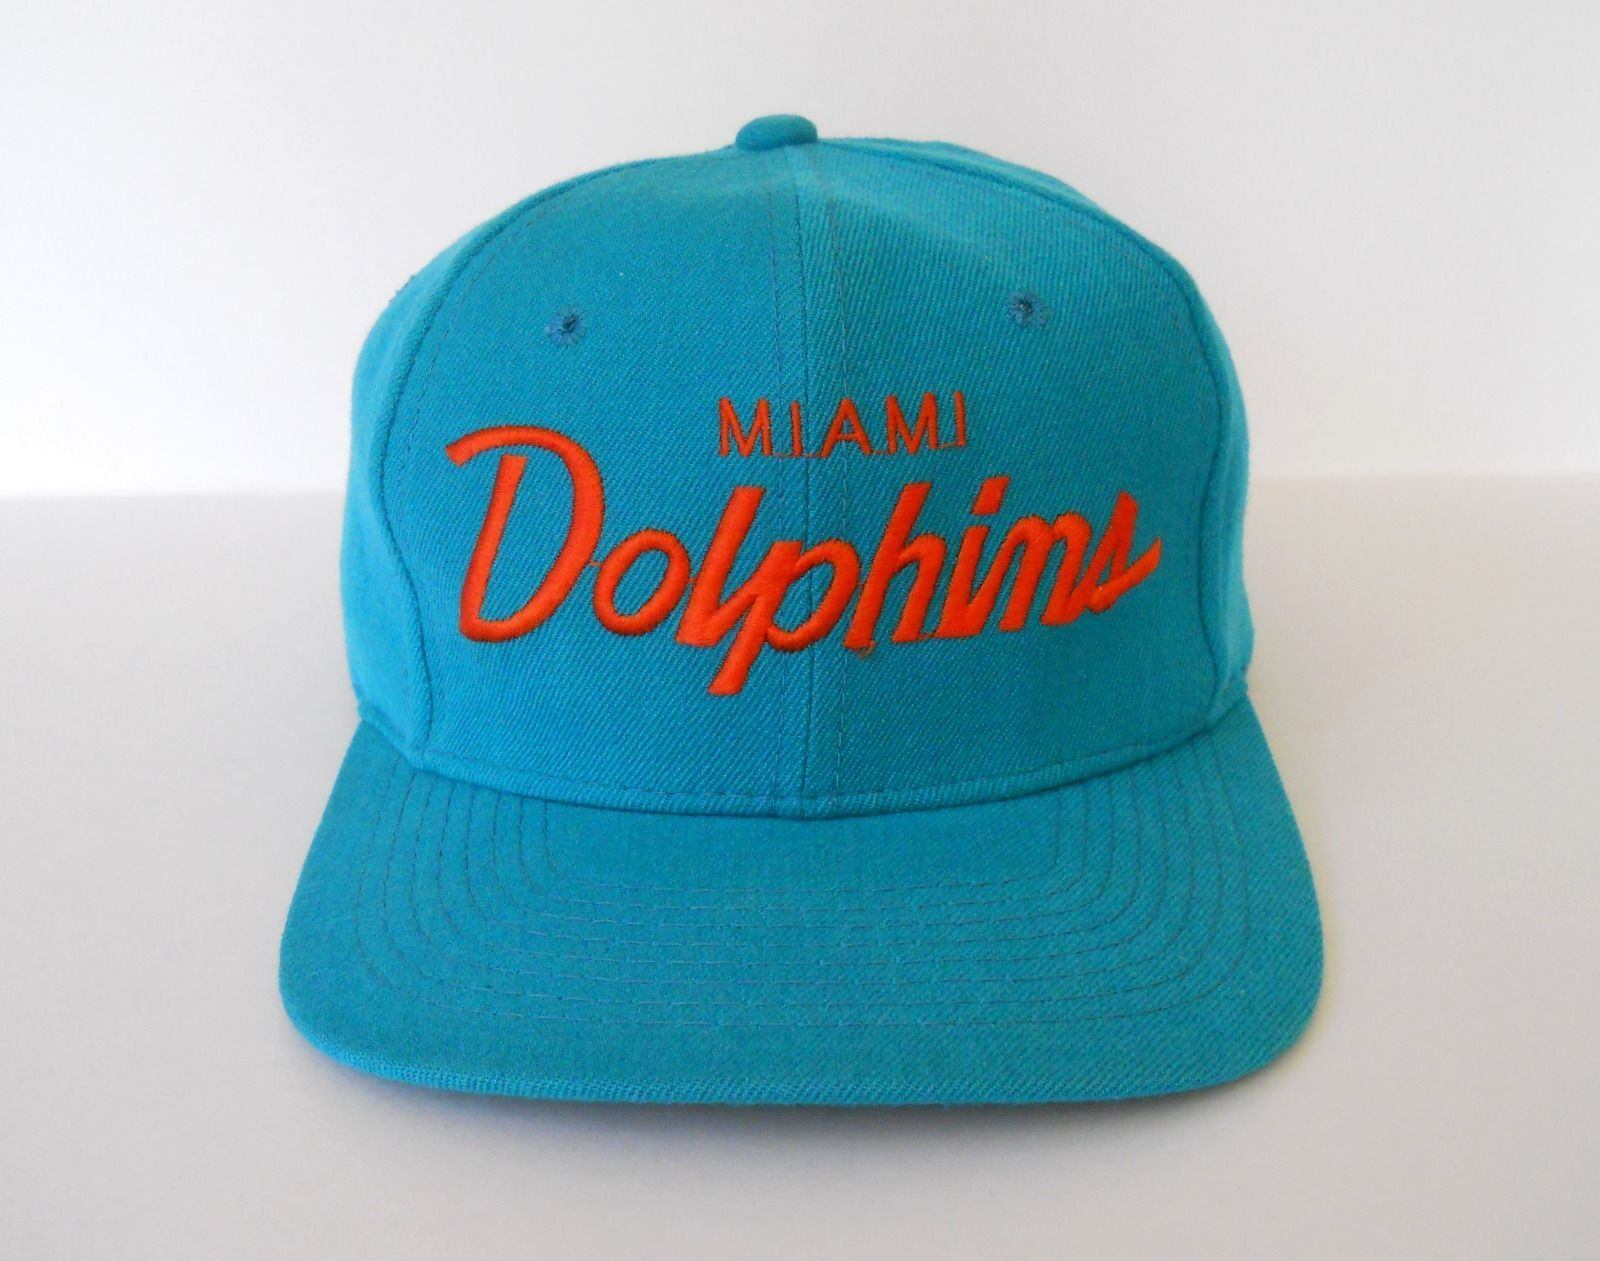 68a1a6eca7d Miami Dolphins Snapback by Sports Secialties Single Line Script Pro NFL  Vintage